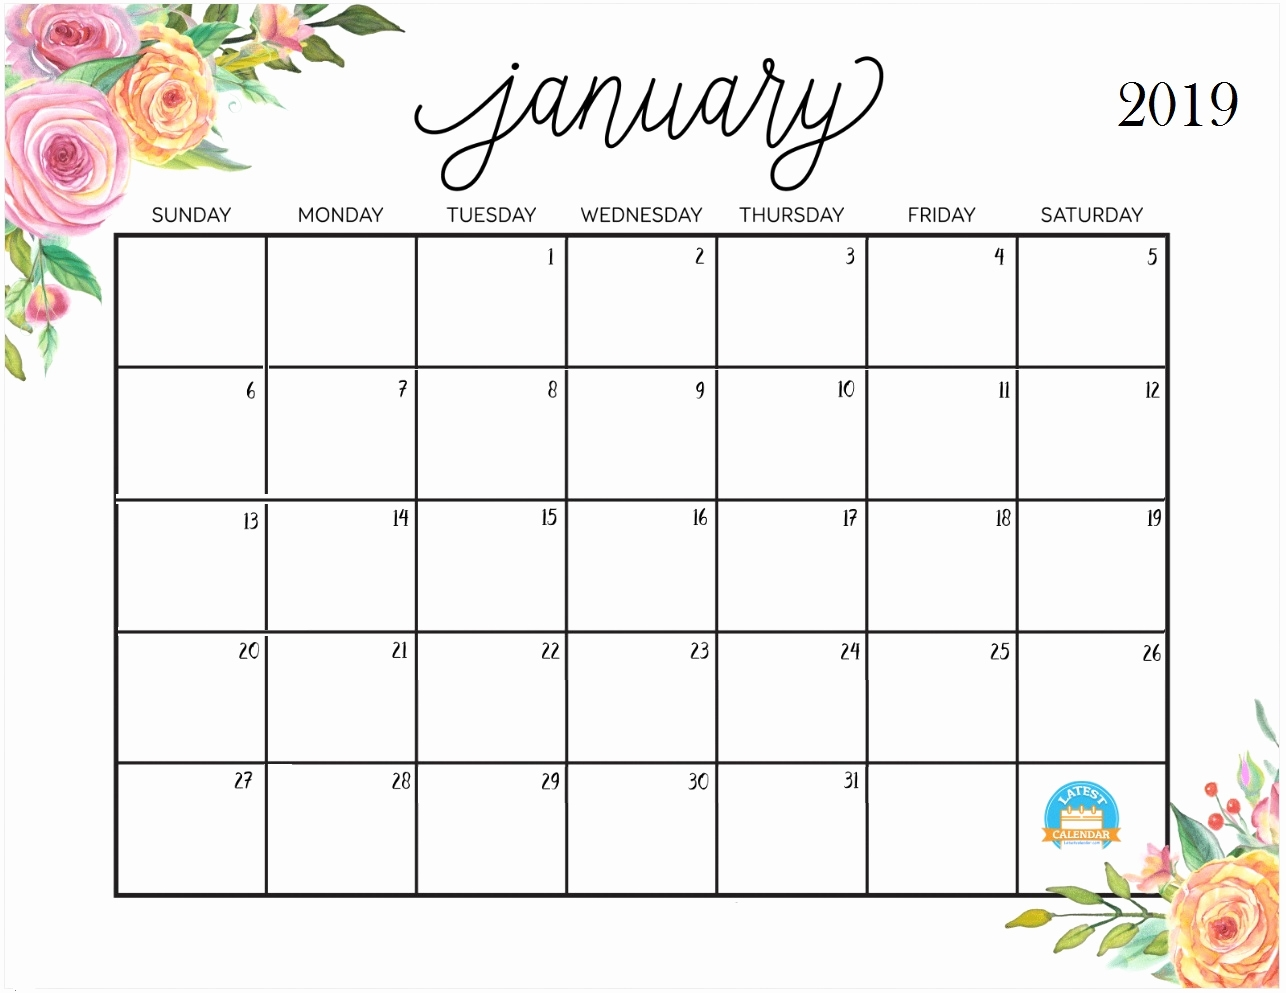 january 2019 calendar printable january 2019 calendar latest::January 2019 Calendar Printable